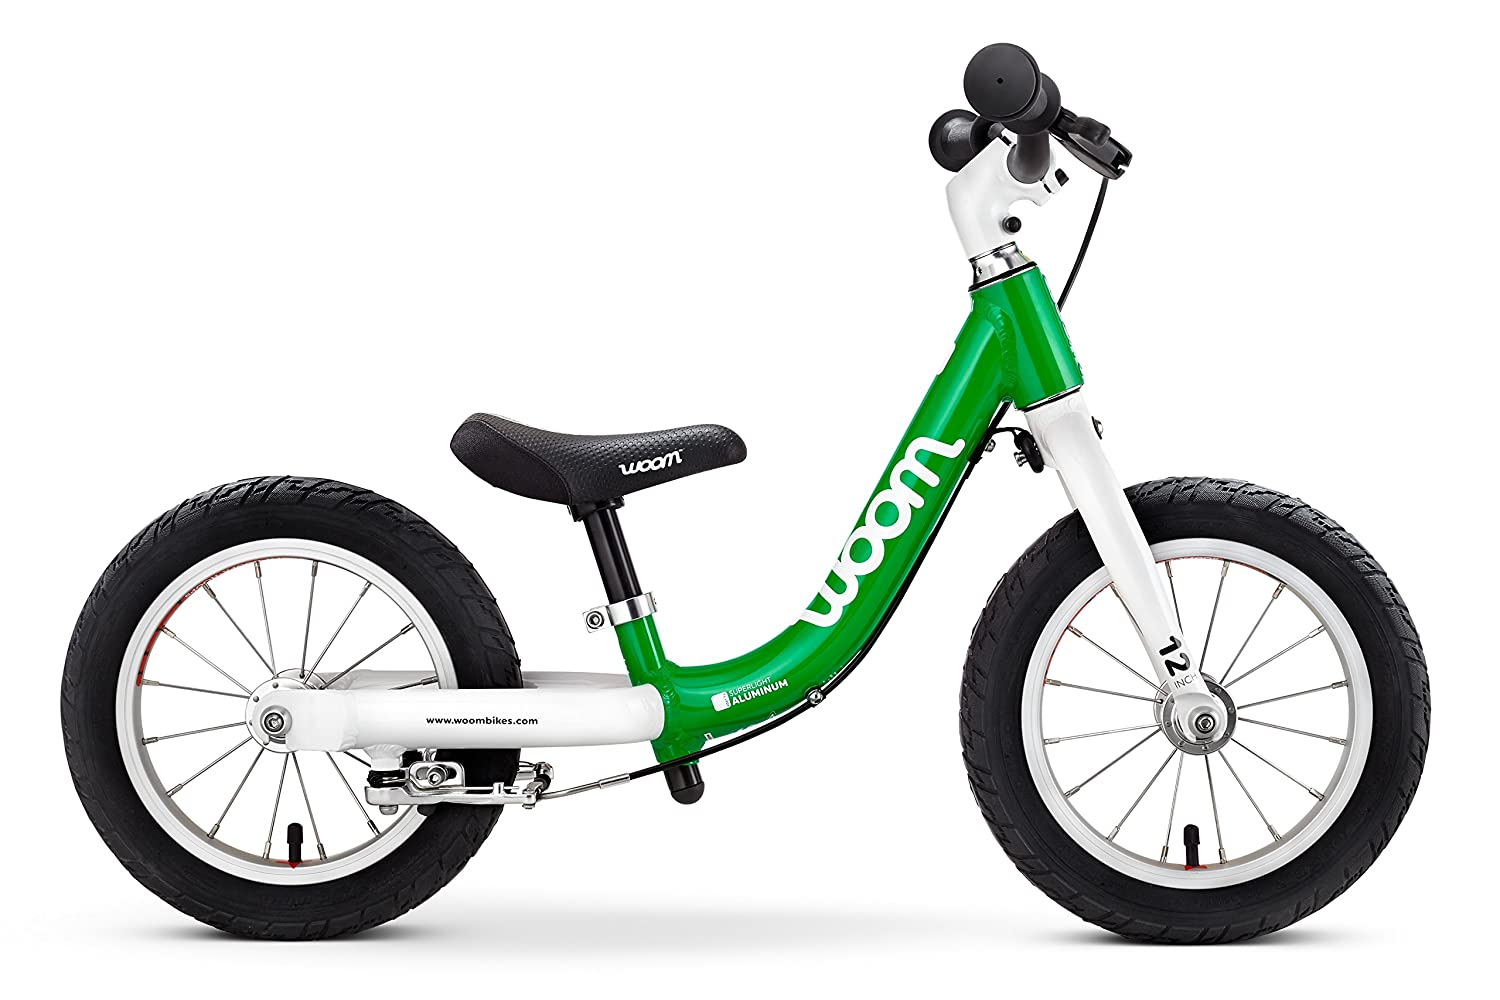 "WOOM BIKES USA Woom 1 Balance Bike 12"" Ages 18 Months to 3.5 Years"